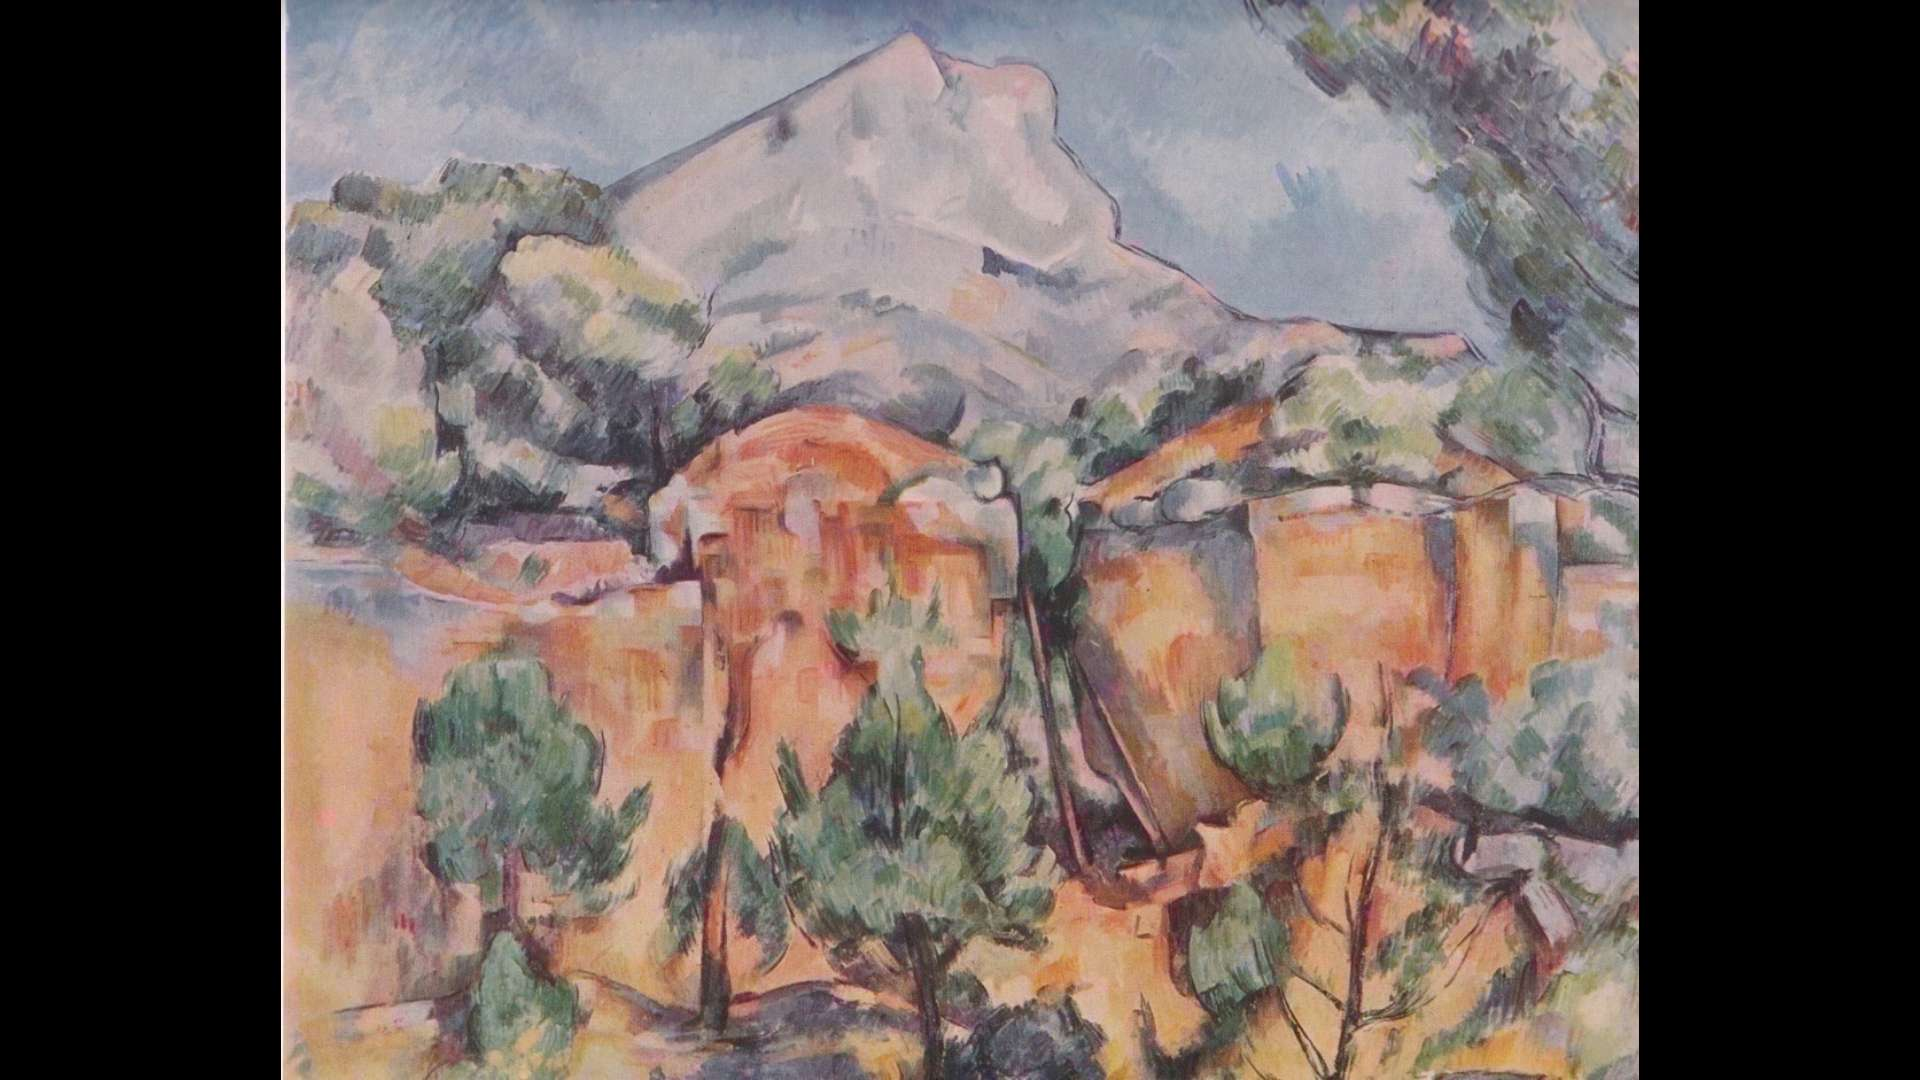 Paul Cézanne. THE MONTAGNE SAINTE-VICTOIRE, as seen from the Bibémus quarries, 1898-1900, oil on canvas, Baltimore Museum of Art. Photography by Mitro Hood.